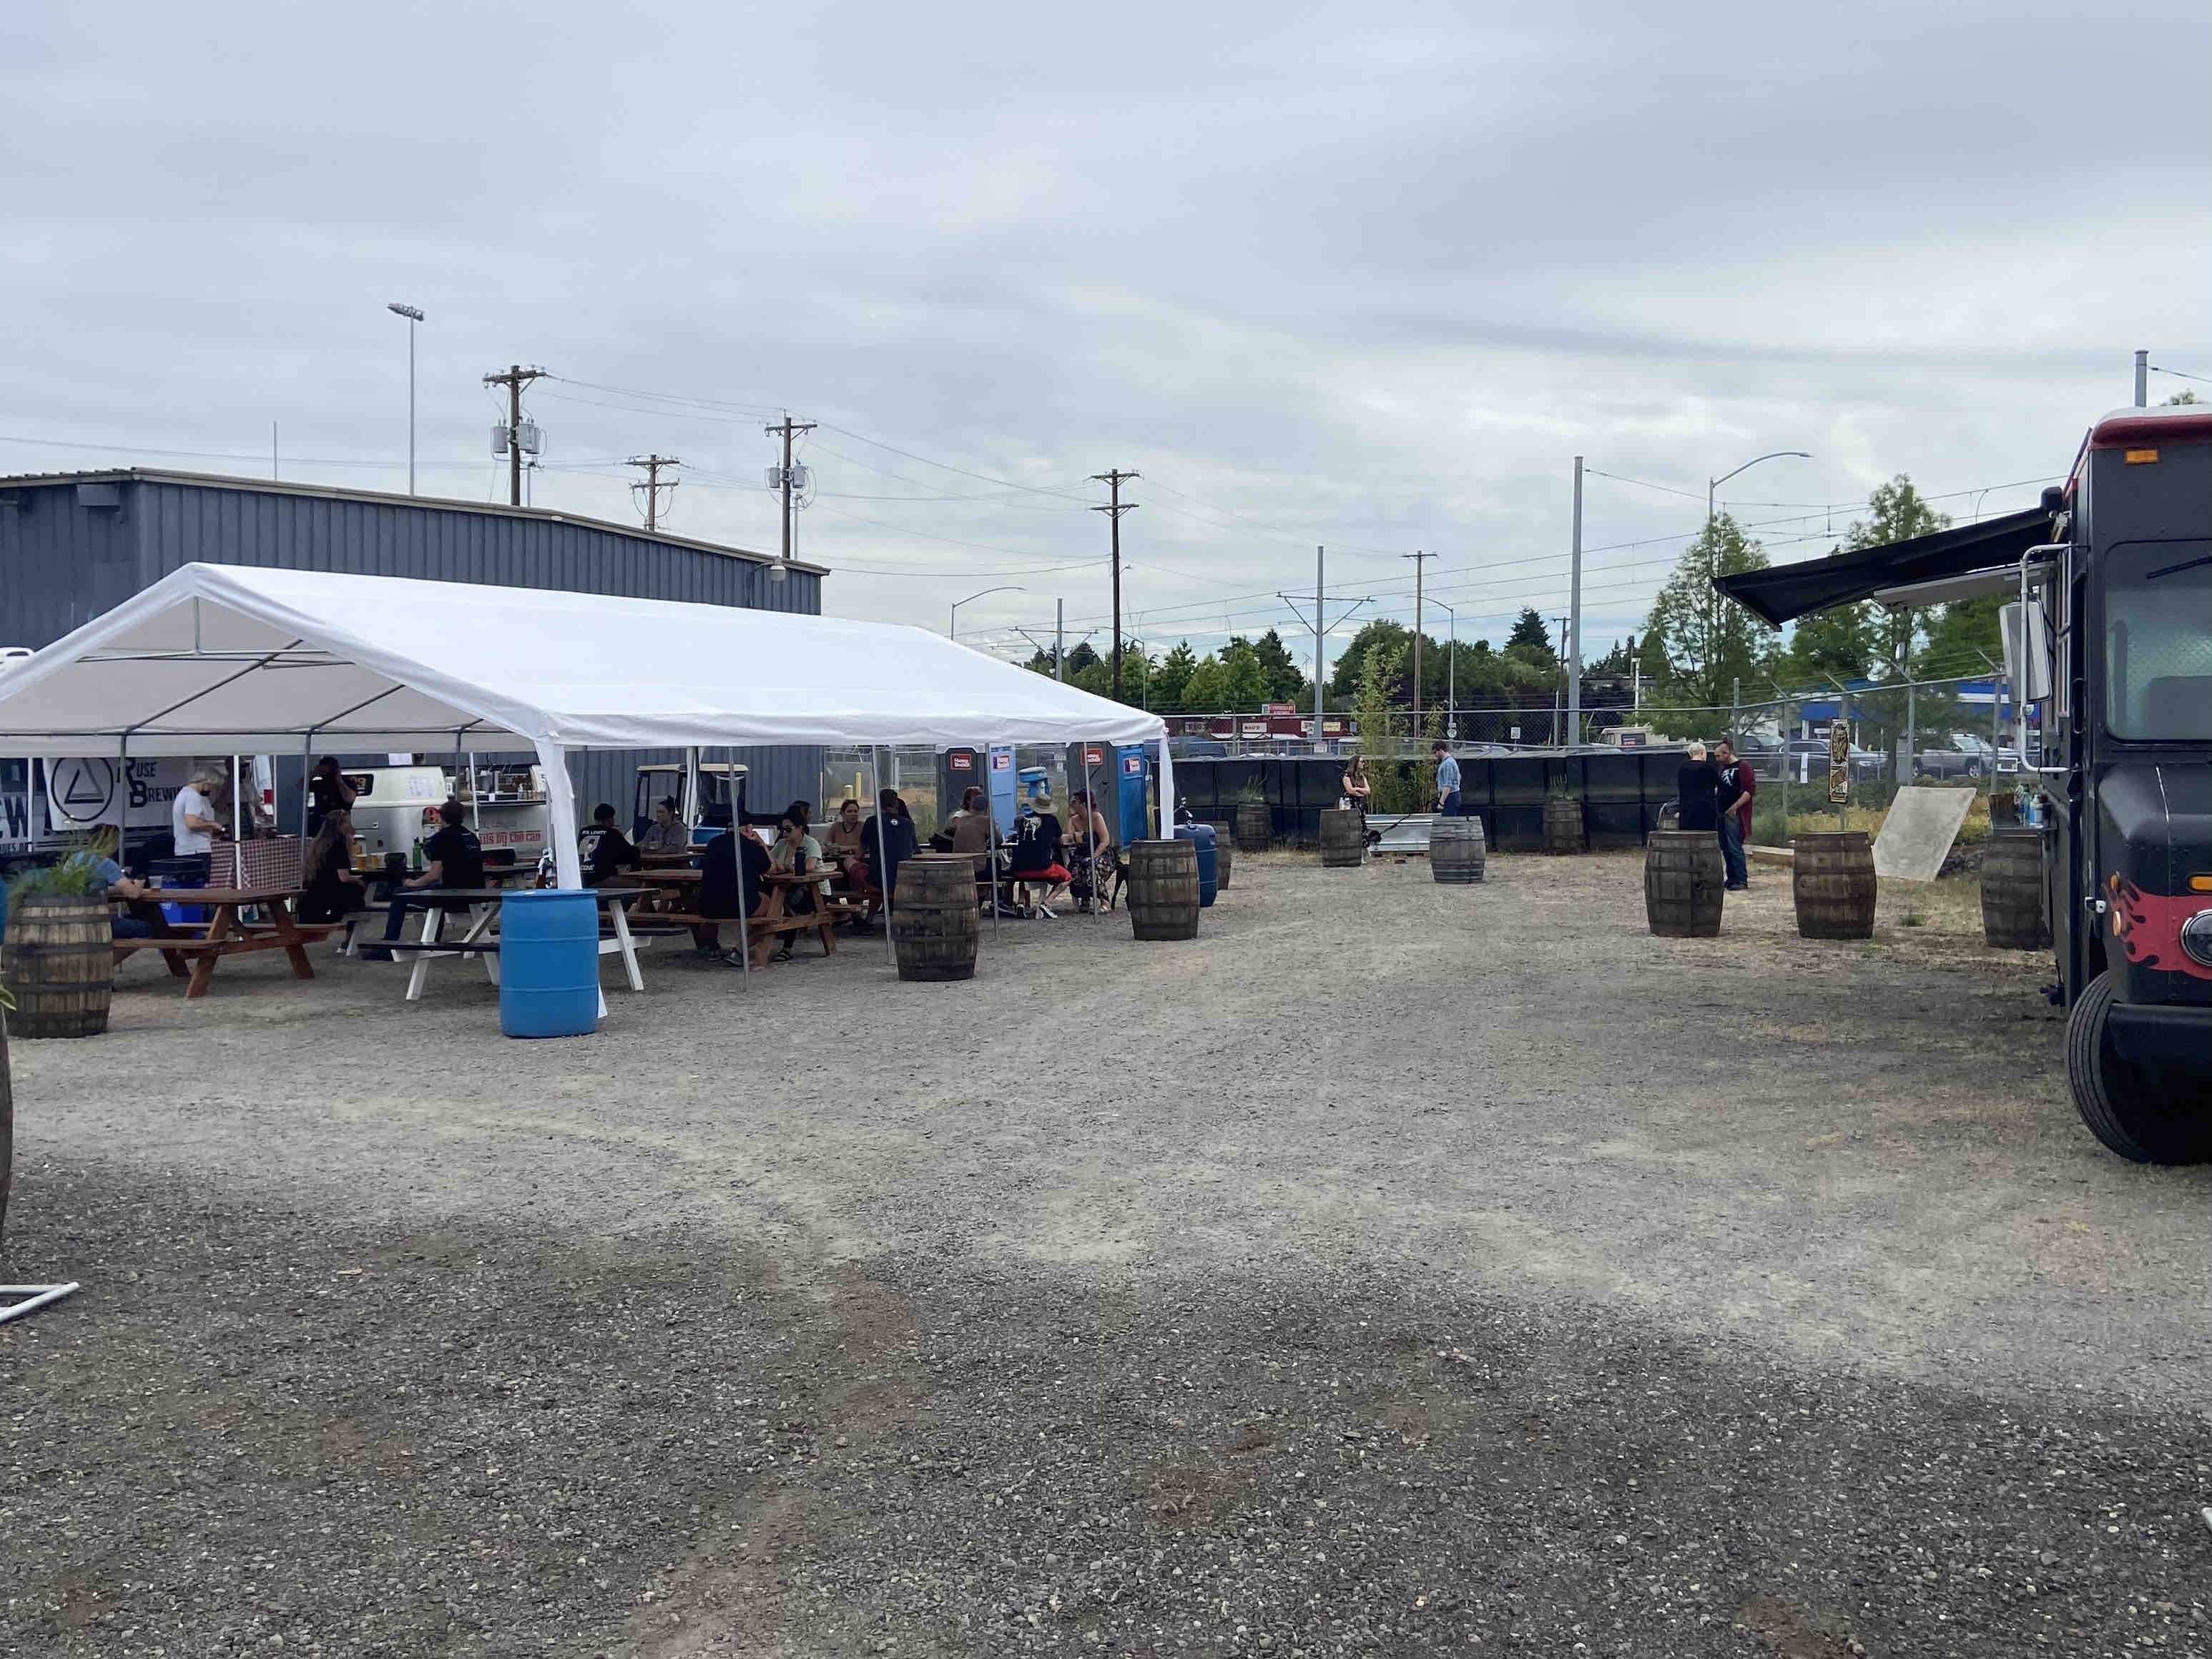 The parking lot that has transitioned into the new Brooklyn Garden. This new weekend outdoor space features Ruse Brewing, 503 Distilling, and Adega Northwest Wines.